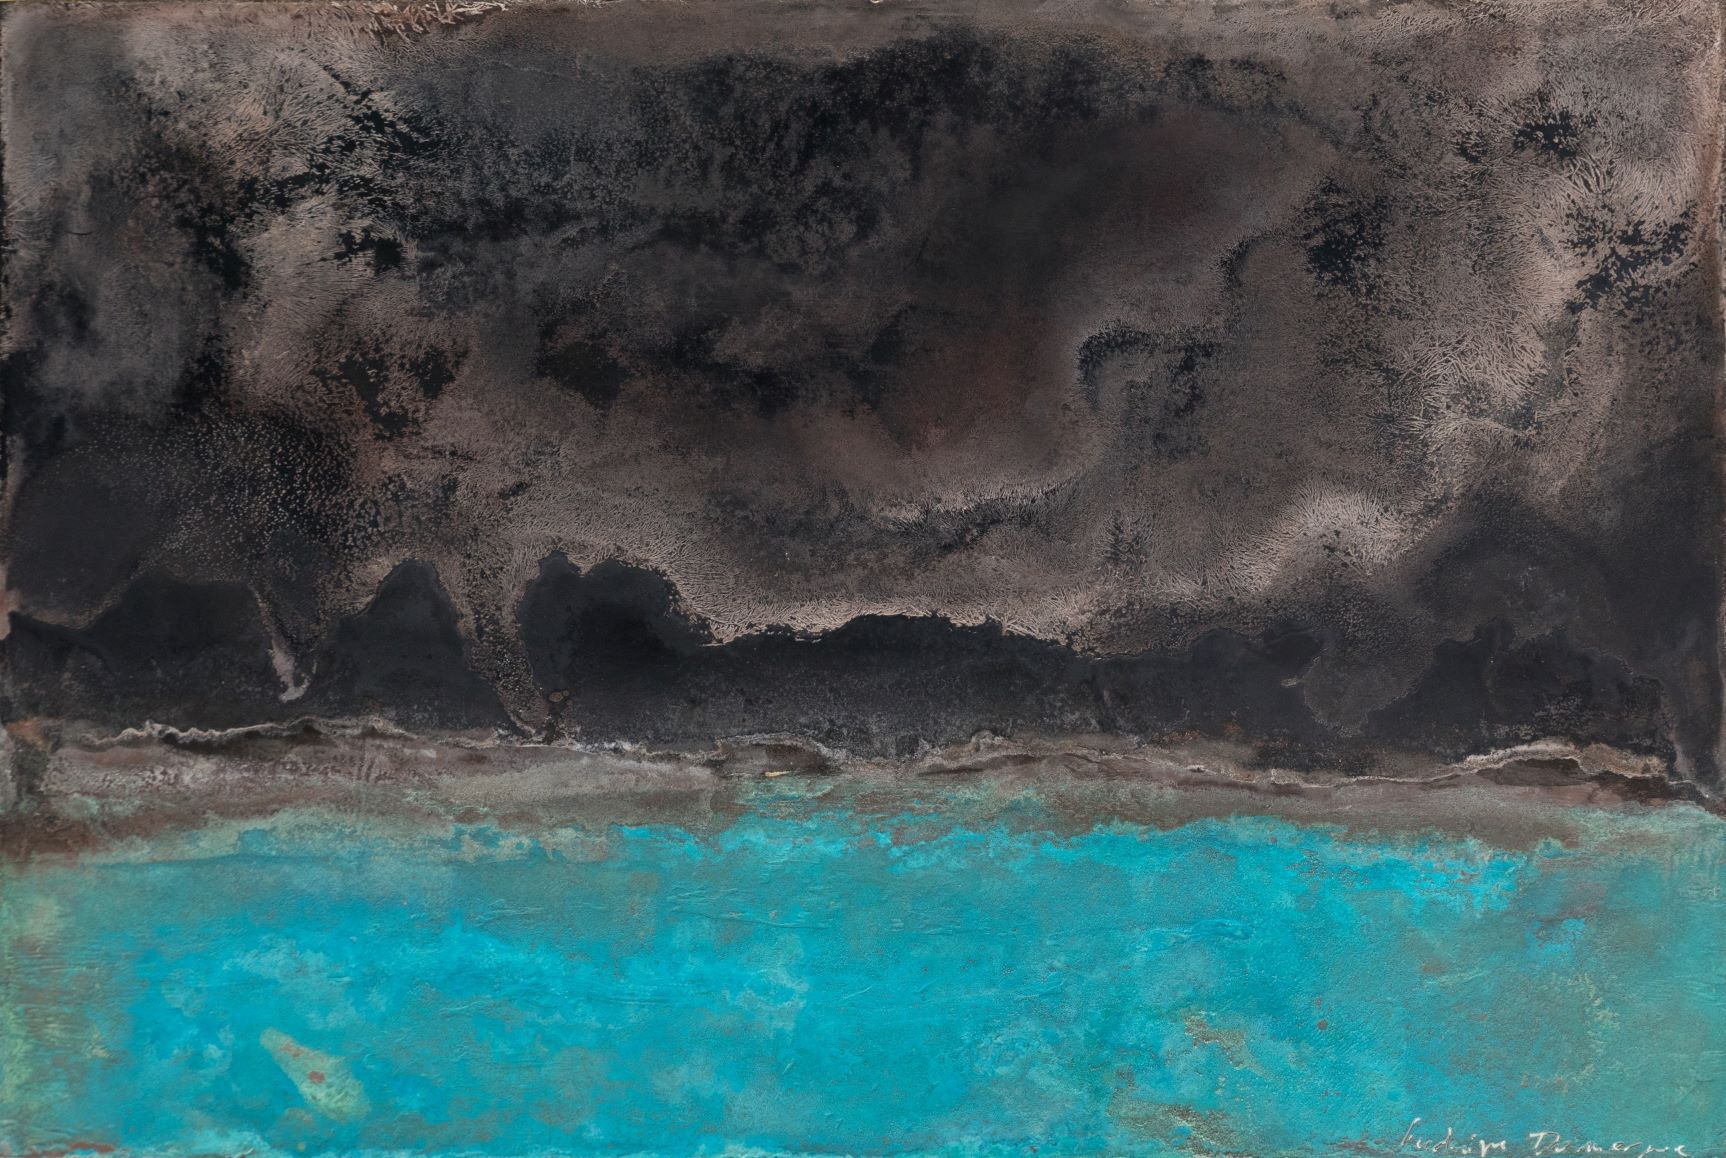 Untitled XIX-XIII, Small size series,Frédérique Domergue,Contemporary painting